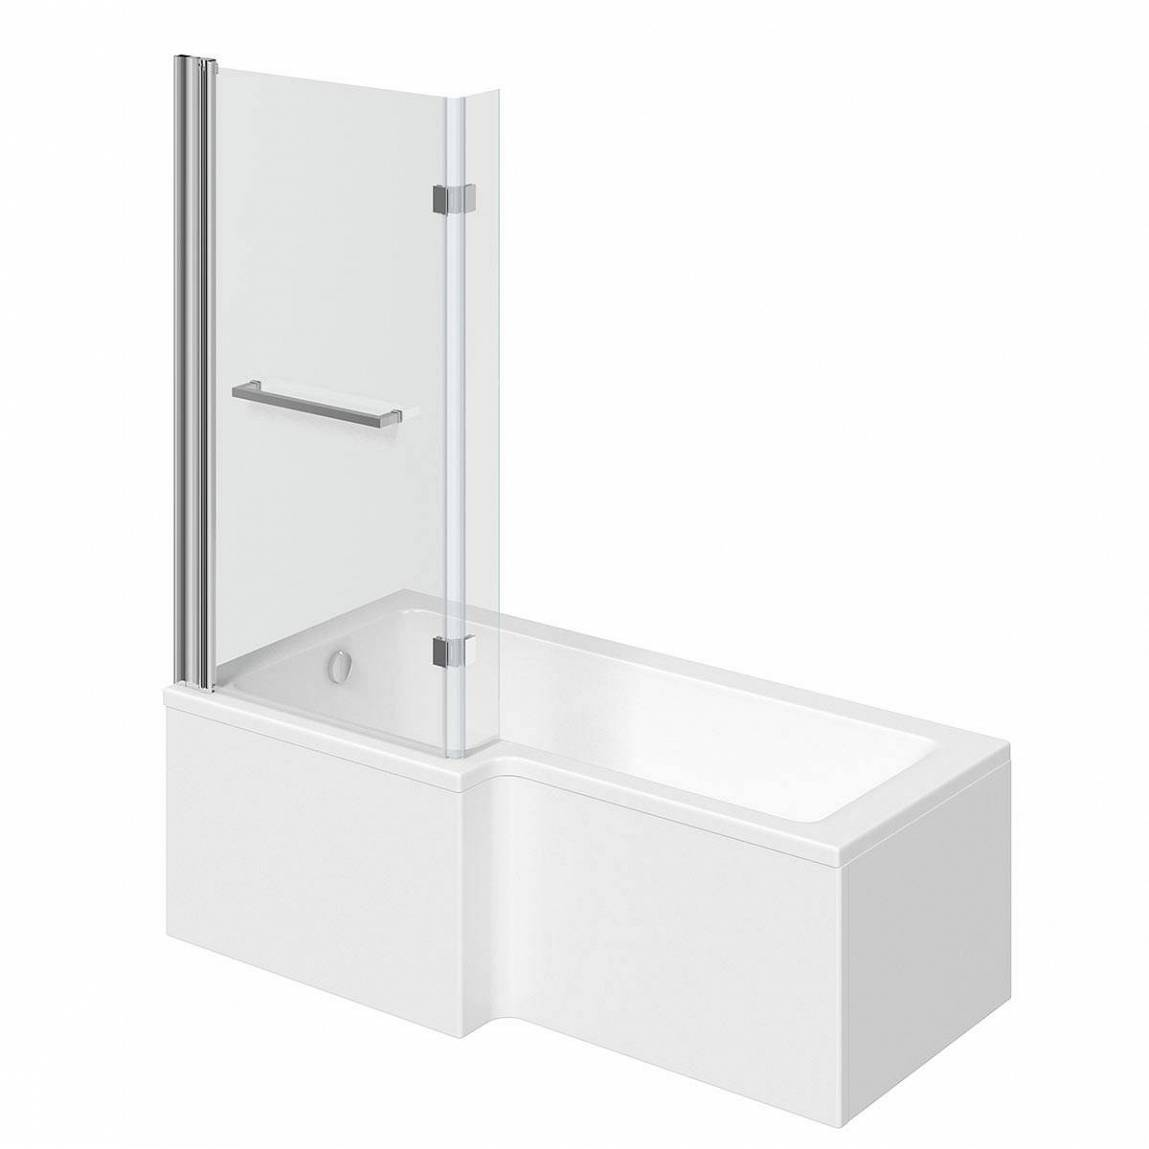 Image of Boston Shower Bath 1700 x 850 LH inc. 8mm Hinged Screen with Towel Rail